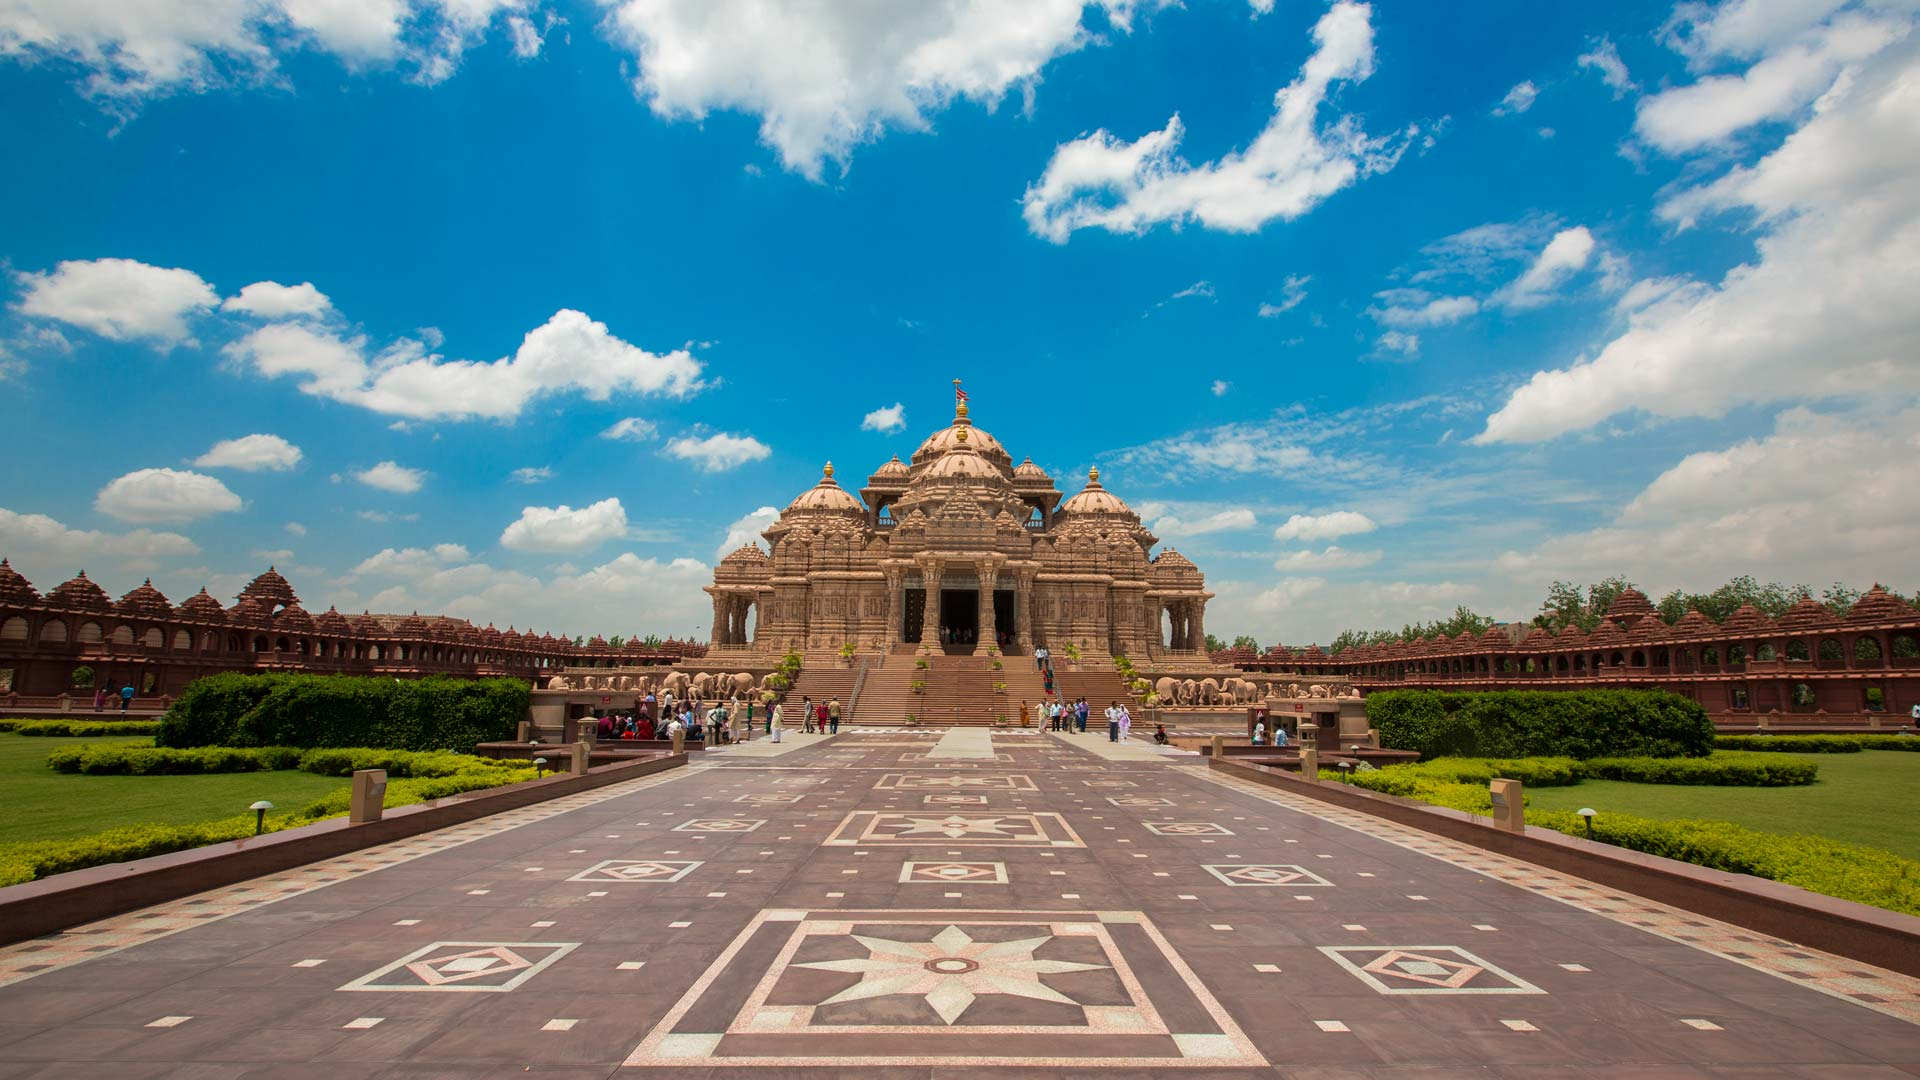 Half Day Tour of Temples in Delhi including hotel pick up and drop off